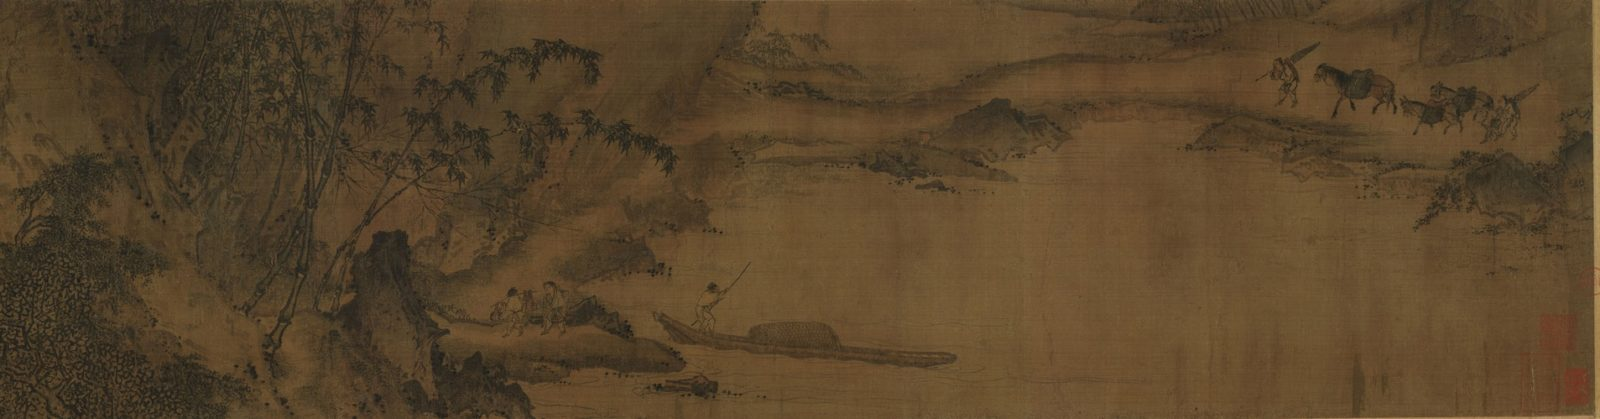 Part 3, Composing Poetry on a Spring Outing by Ma Yuan. Ink and color on silk. Atkins Museum of Art, Kansas City. genius artist Ma Yuan